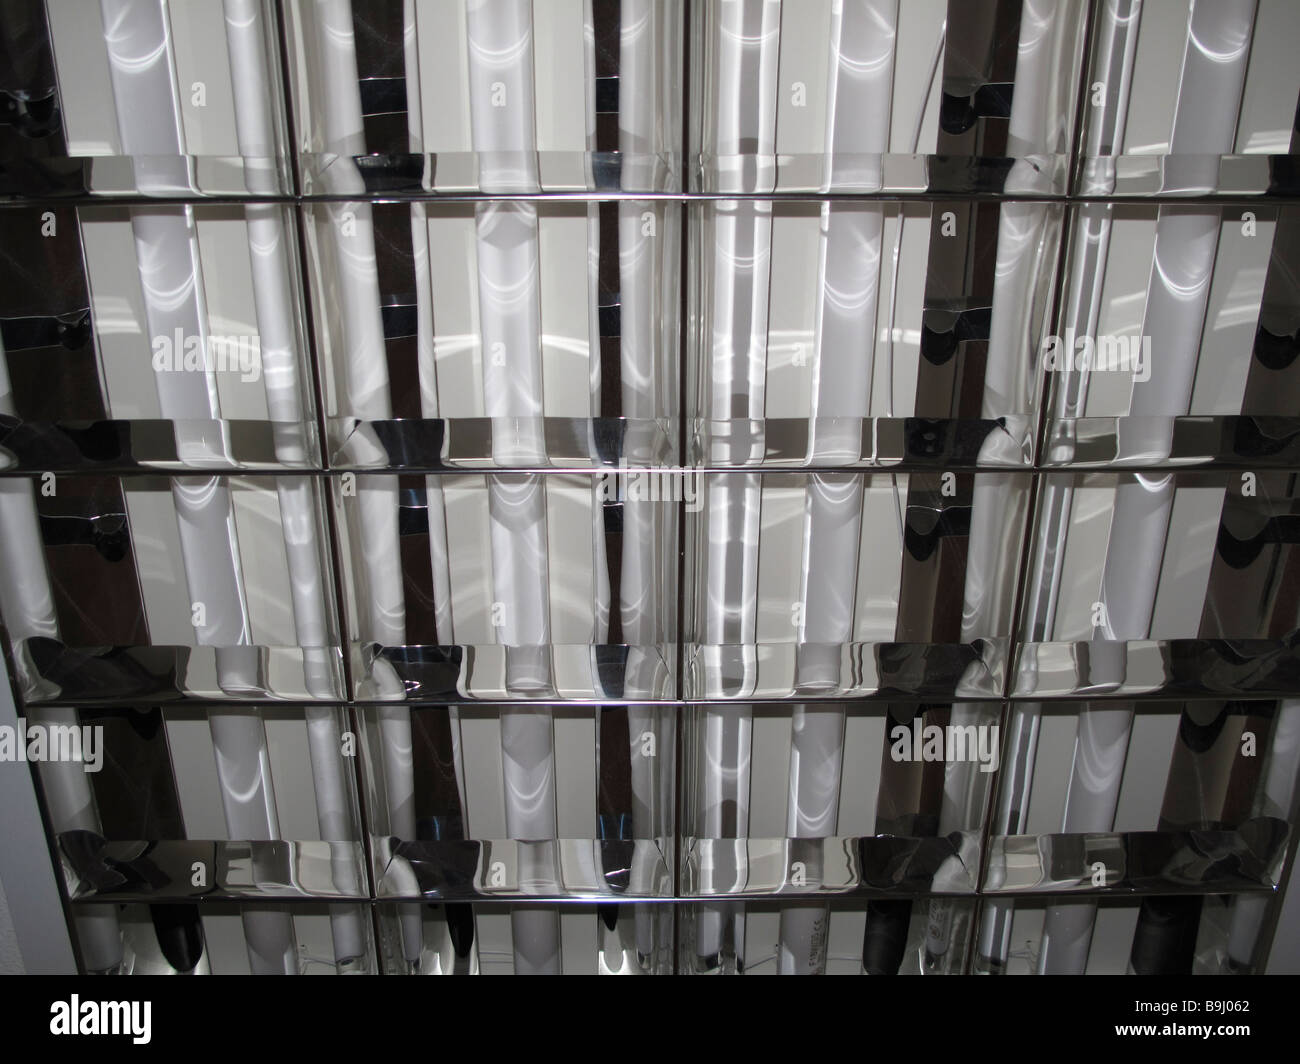 Fluorescent light fitting detail - Stock Image